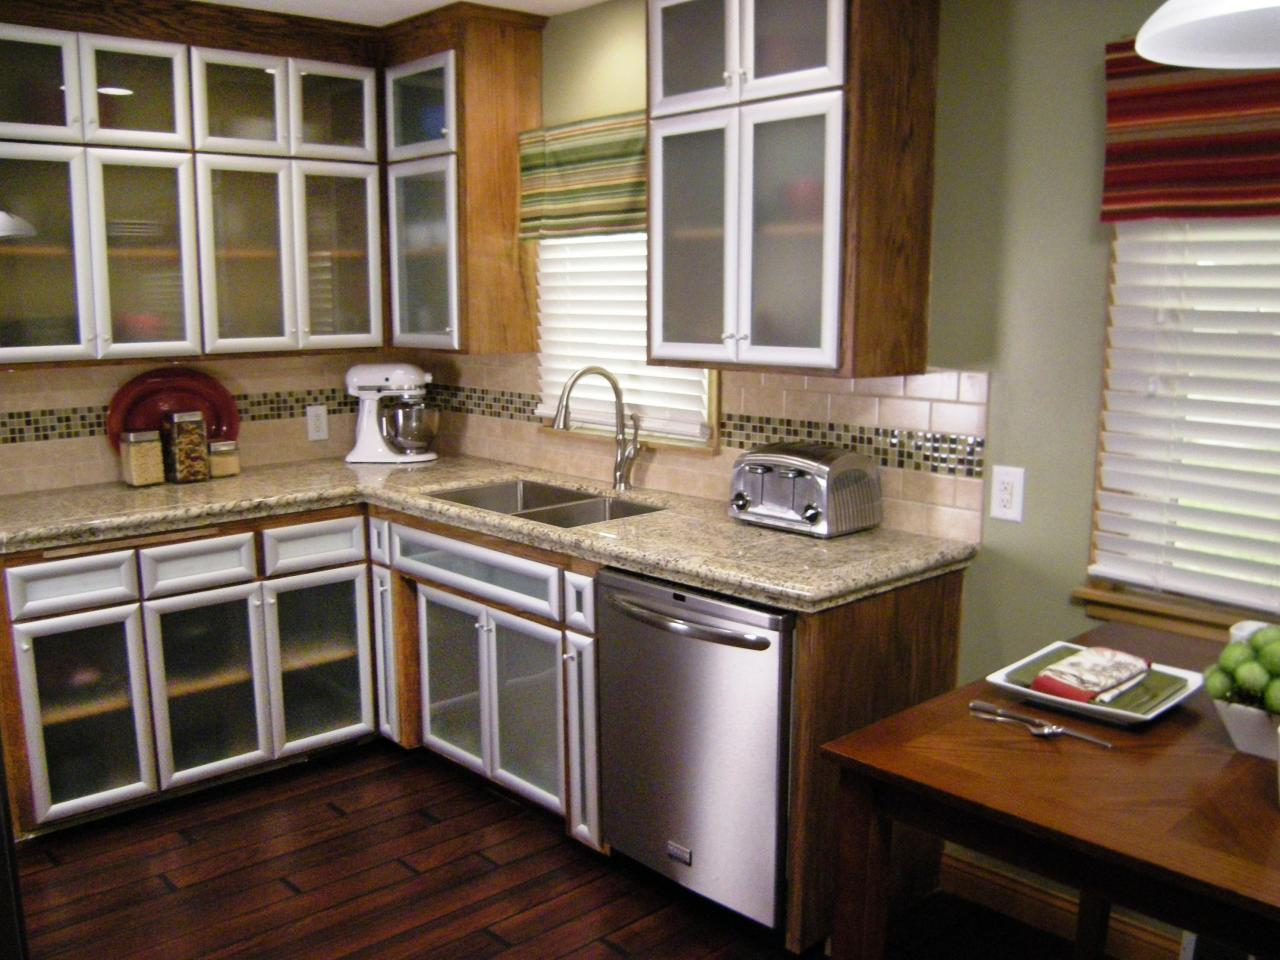 Budget friendly before and after kitchen makeovers diy for Kitchen cabinets on a budget